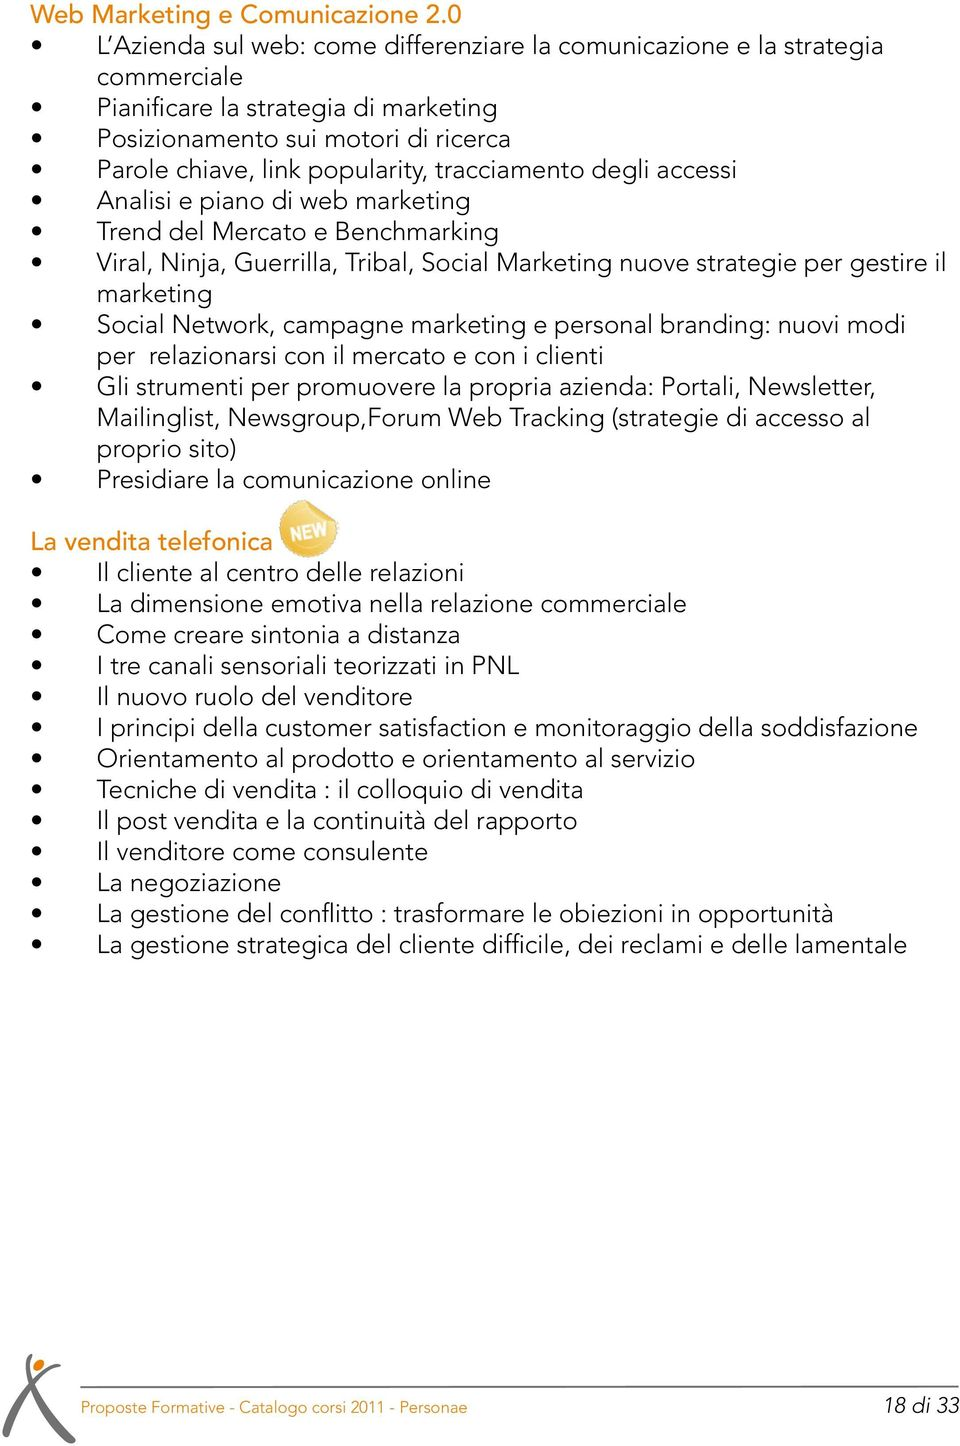 tracciamento degli accessi Analisi e piano di web marketing Trend del Mercato e Benchmarking Viral, Ninja, Guerrilla, Tribal, Social Marketing nuove strategie per gestire il marketing Social Network,